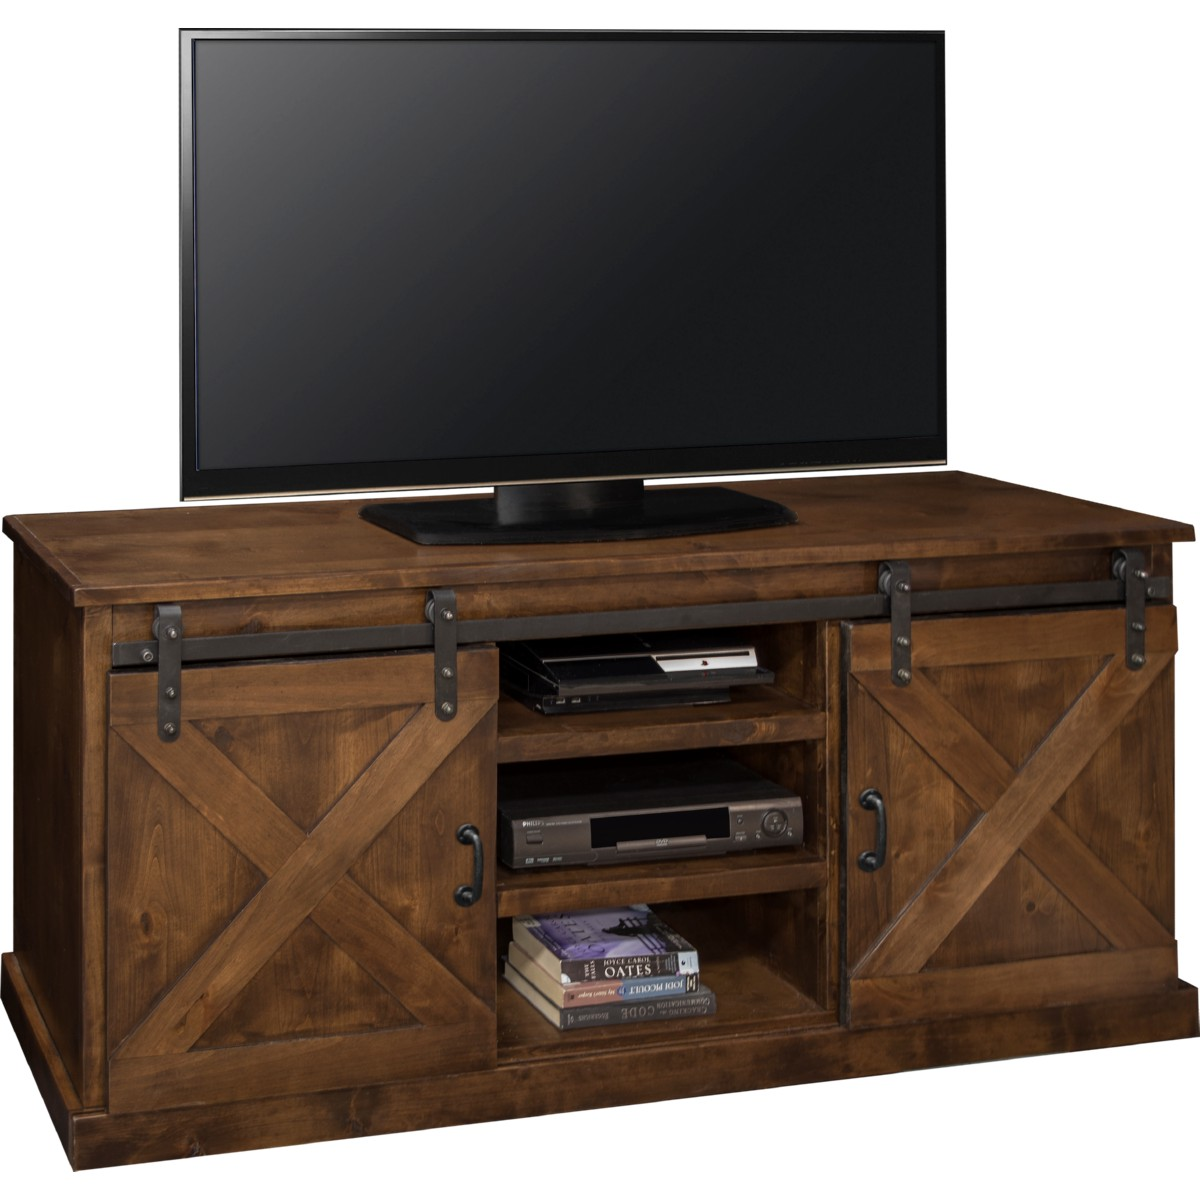 Meridian furniture usa meridian furniture usa taylor for J furniture usa reviews